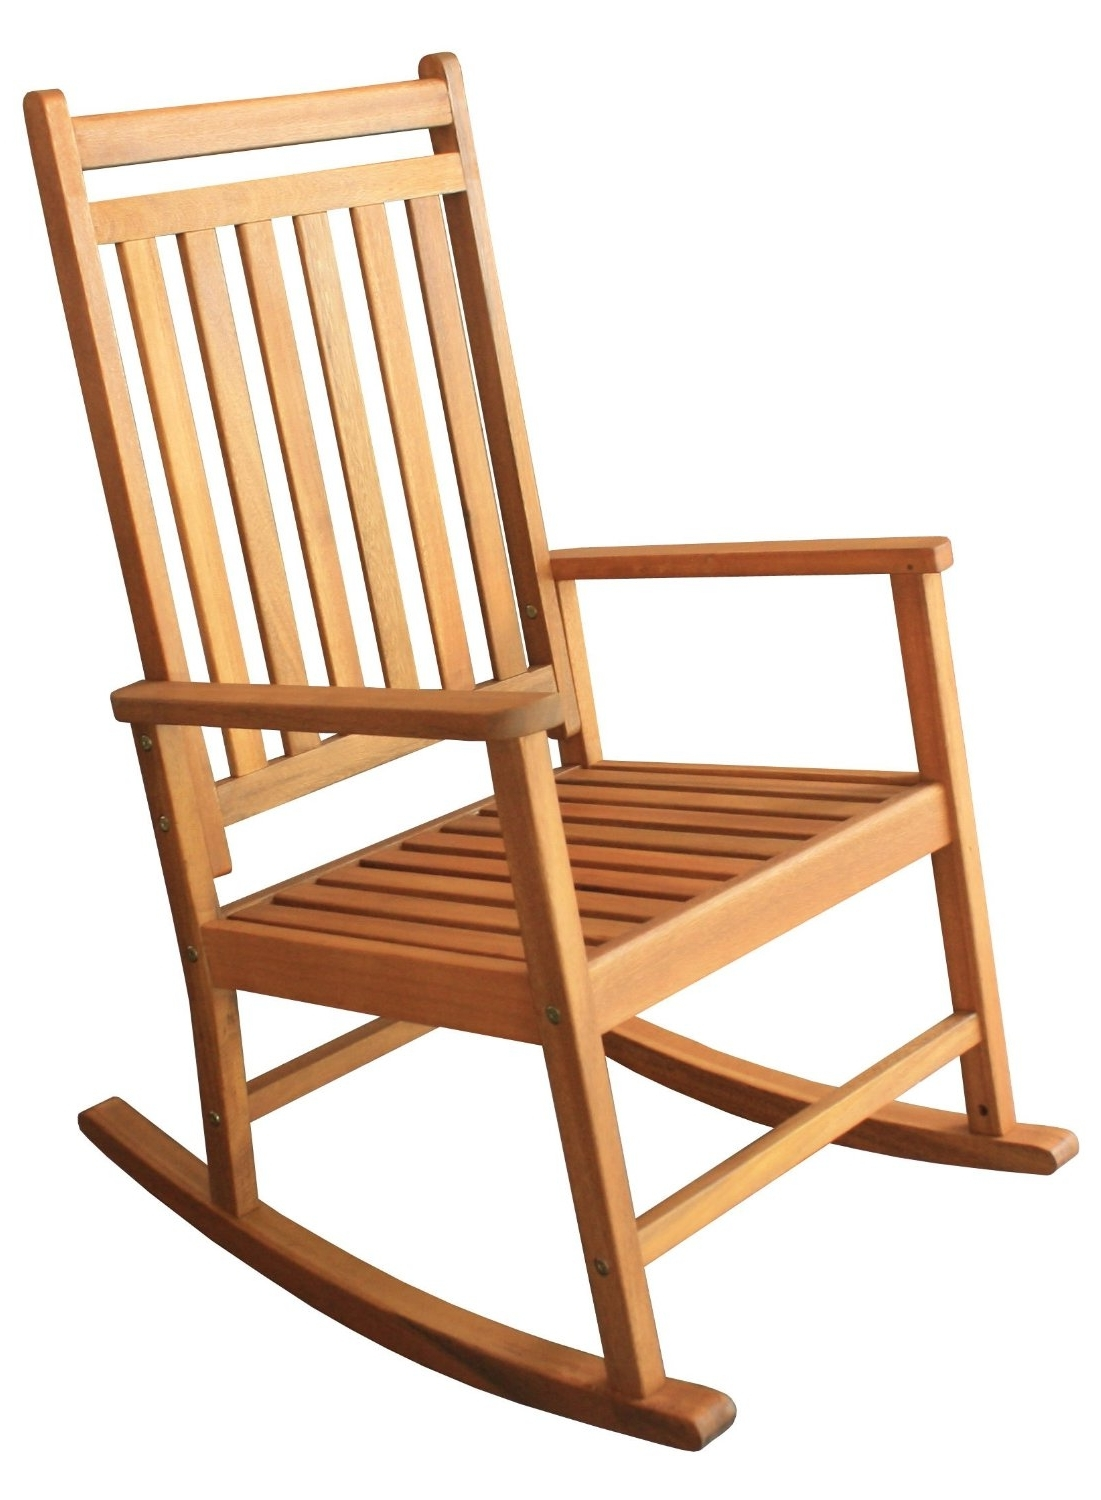 Rocking Chair Outdoor Wooden Regarding Newest Wood Rocking Chair Images – Wood Rocking Chair Buying Considerations (View 18 of 20)